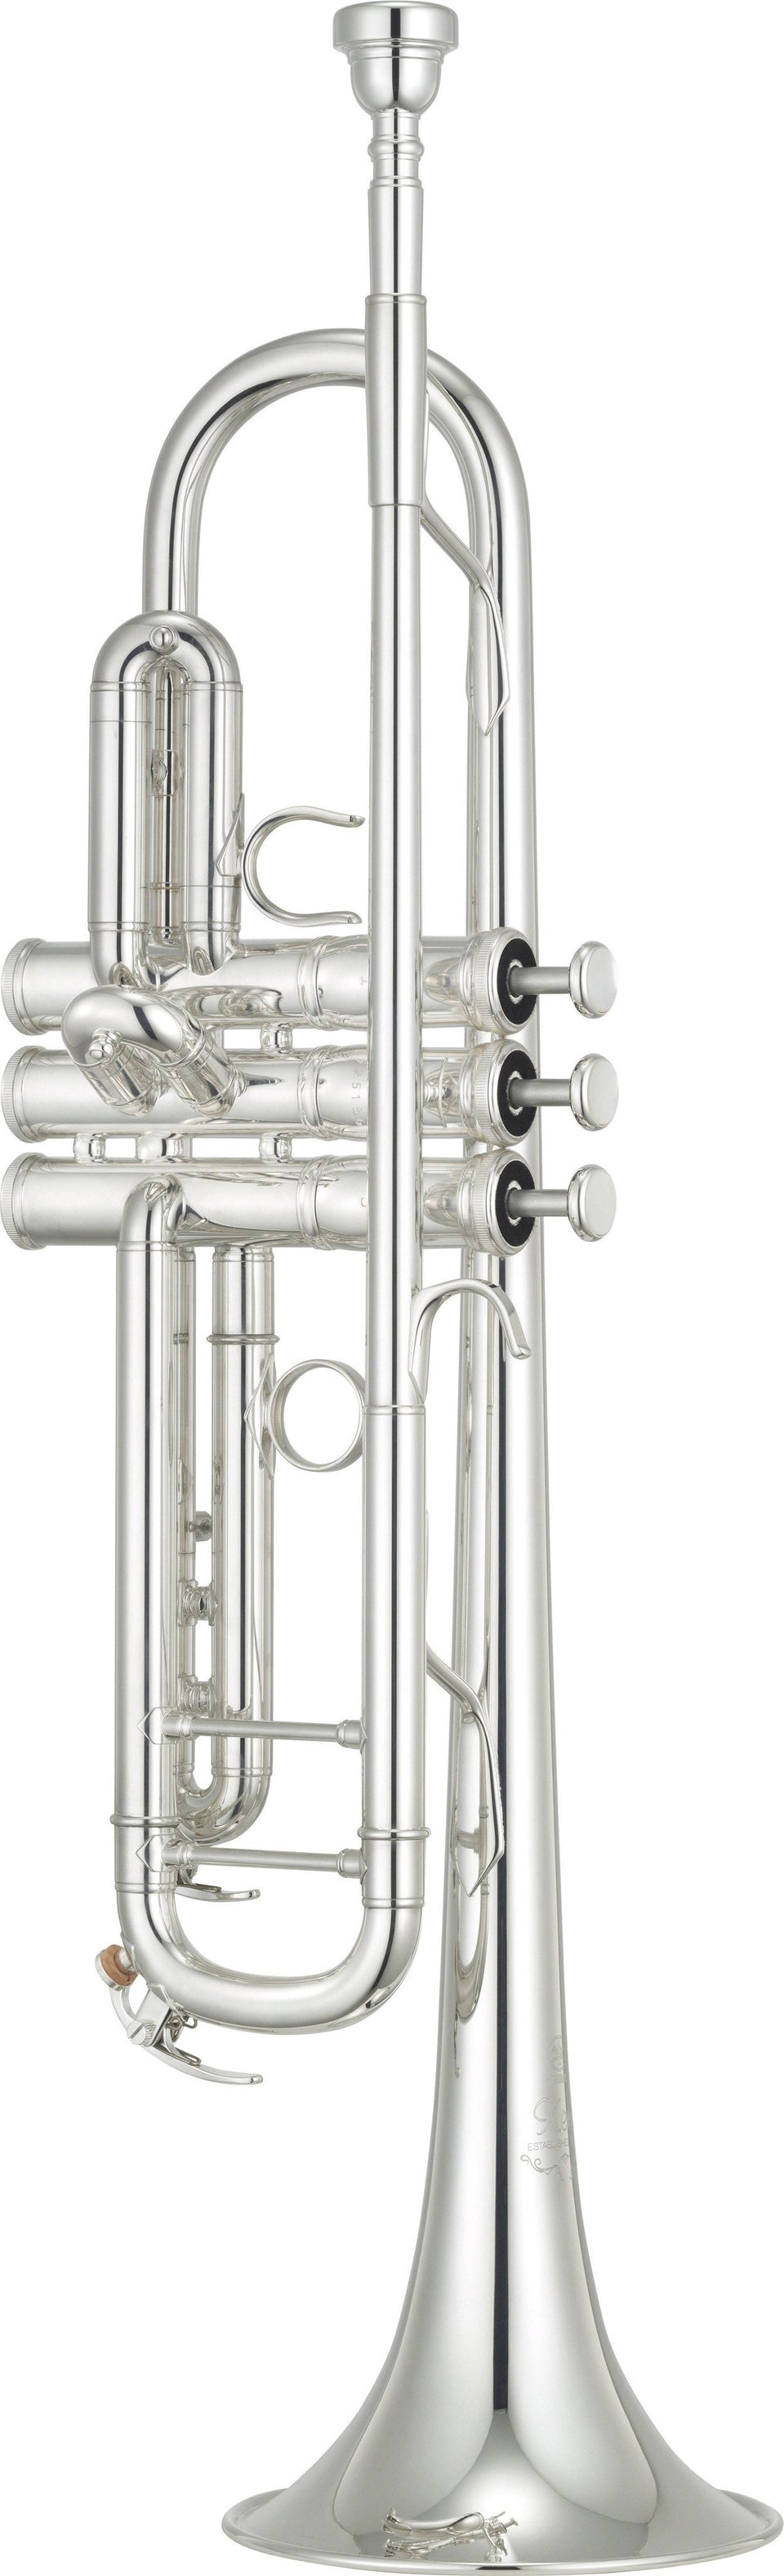 Yamaha YTR-8345IIGS Xeno Model Silver-Plated Trumpet W/ Gold-Brass Bell